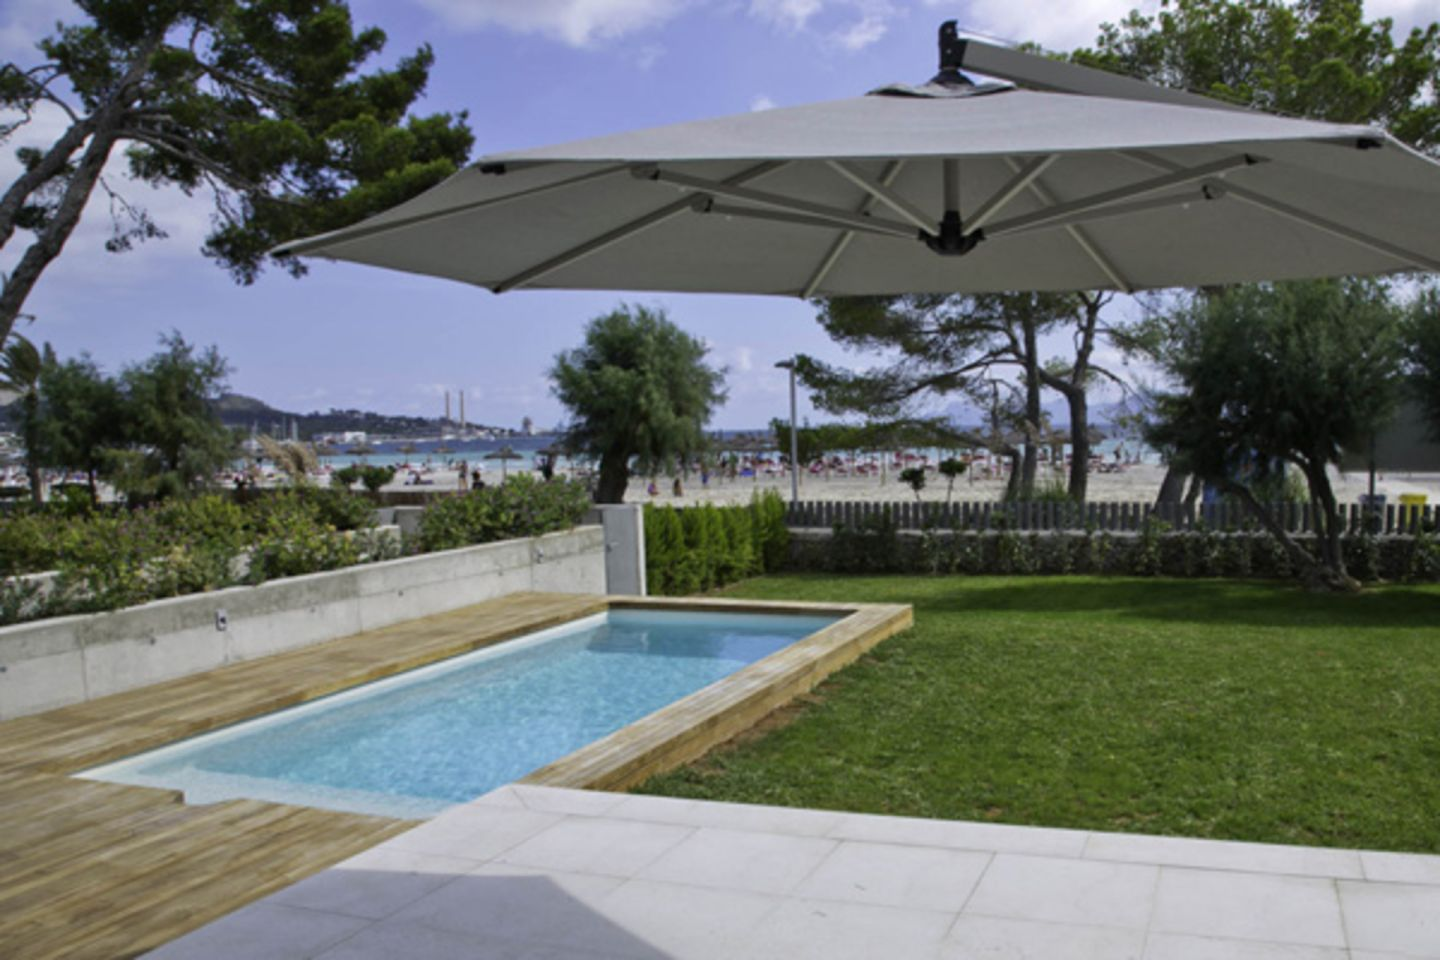 3 Bed Apartment for sale in ALCUDIA 0